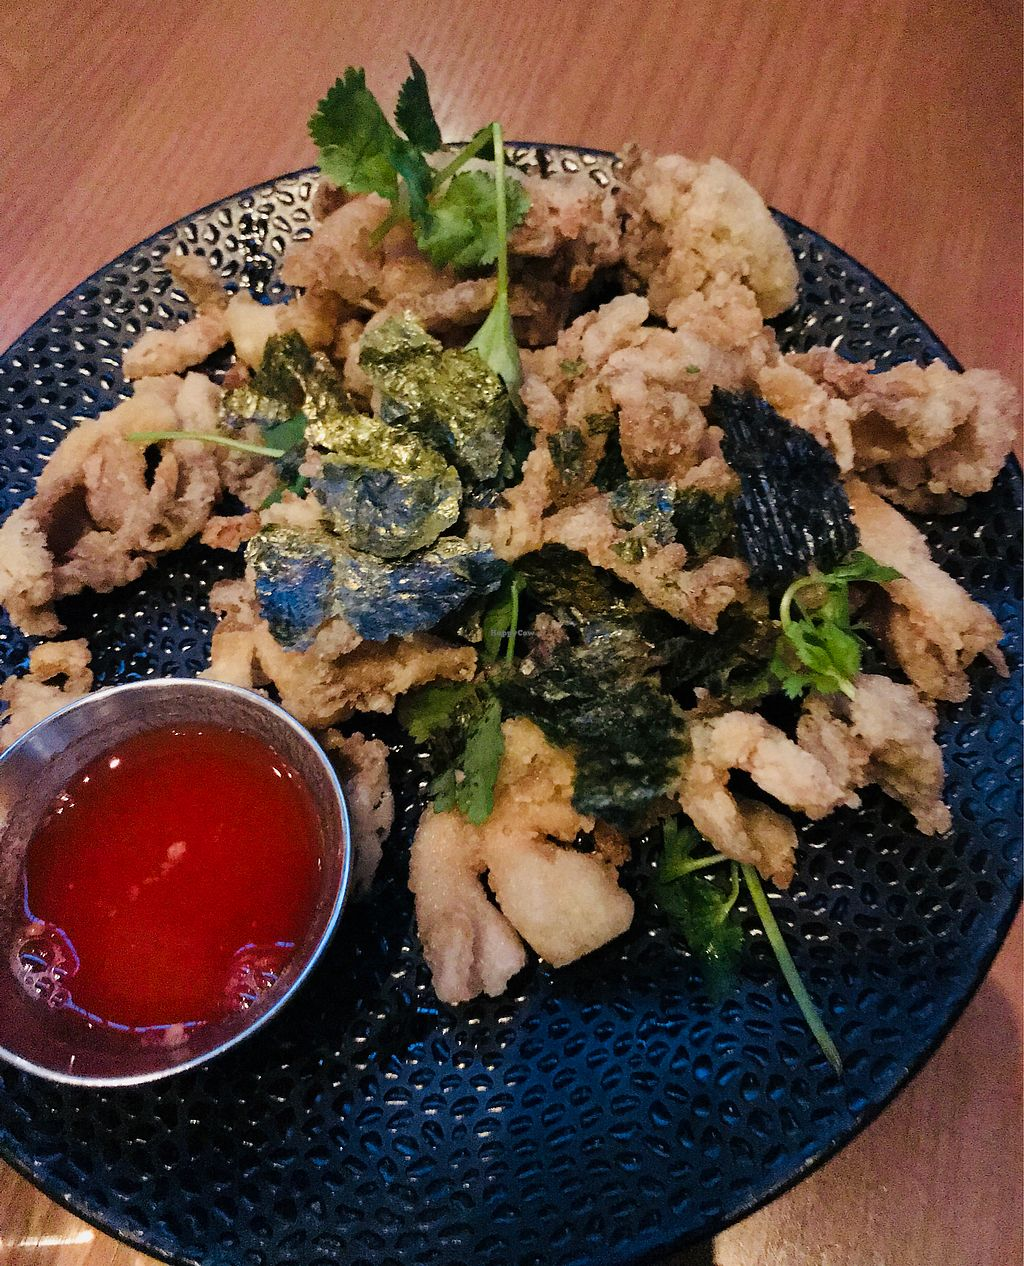 """Photo of Planta  by <a href=""""/members/profile/veggie_ween"""">veggie_ween</a> <br/>Fried mushrooms <br/> April 8, 2018  - <a href='/contact/abuse/image/81537/382592'>Report</a>"""